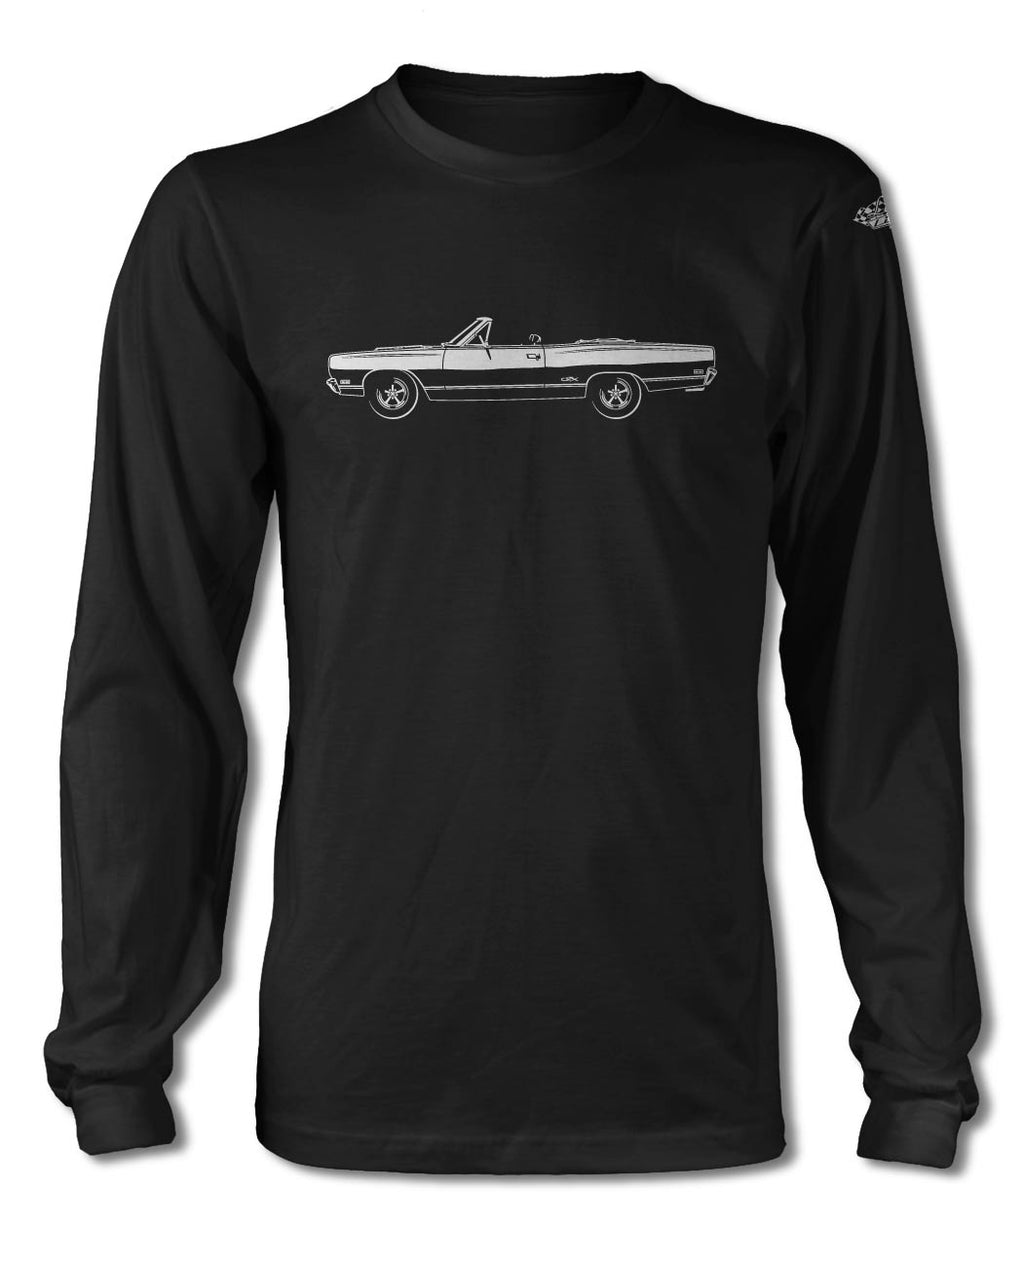 1969 Plymouth GTX Convertible T-Shirt - Long Sleeves - Side View